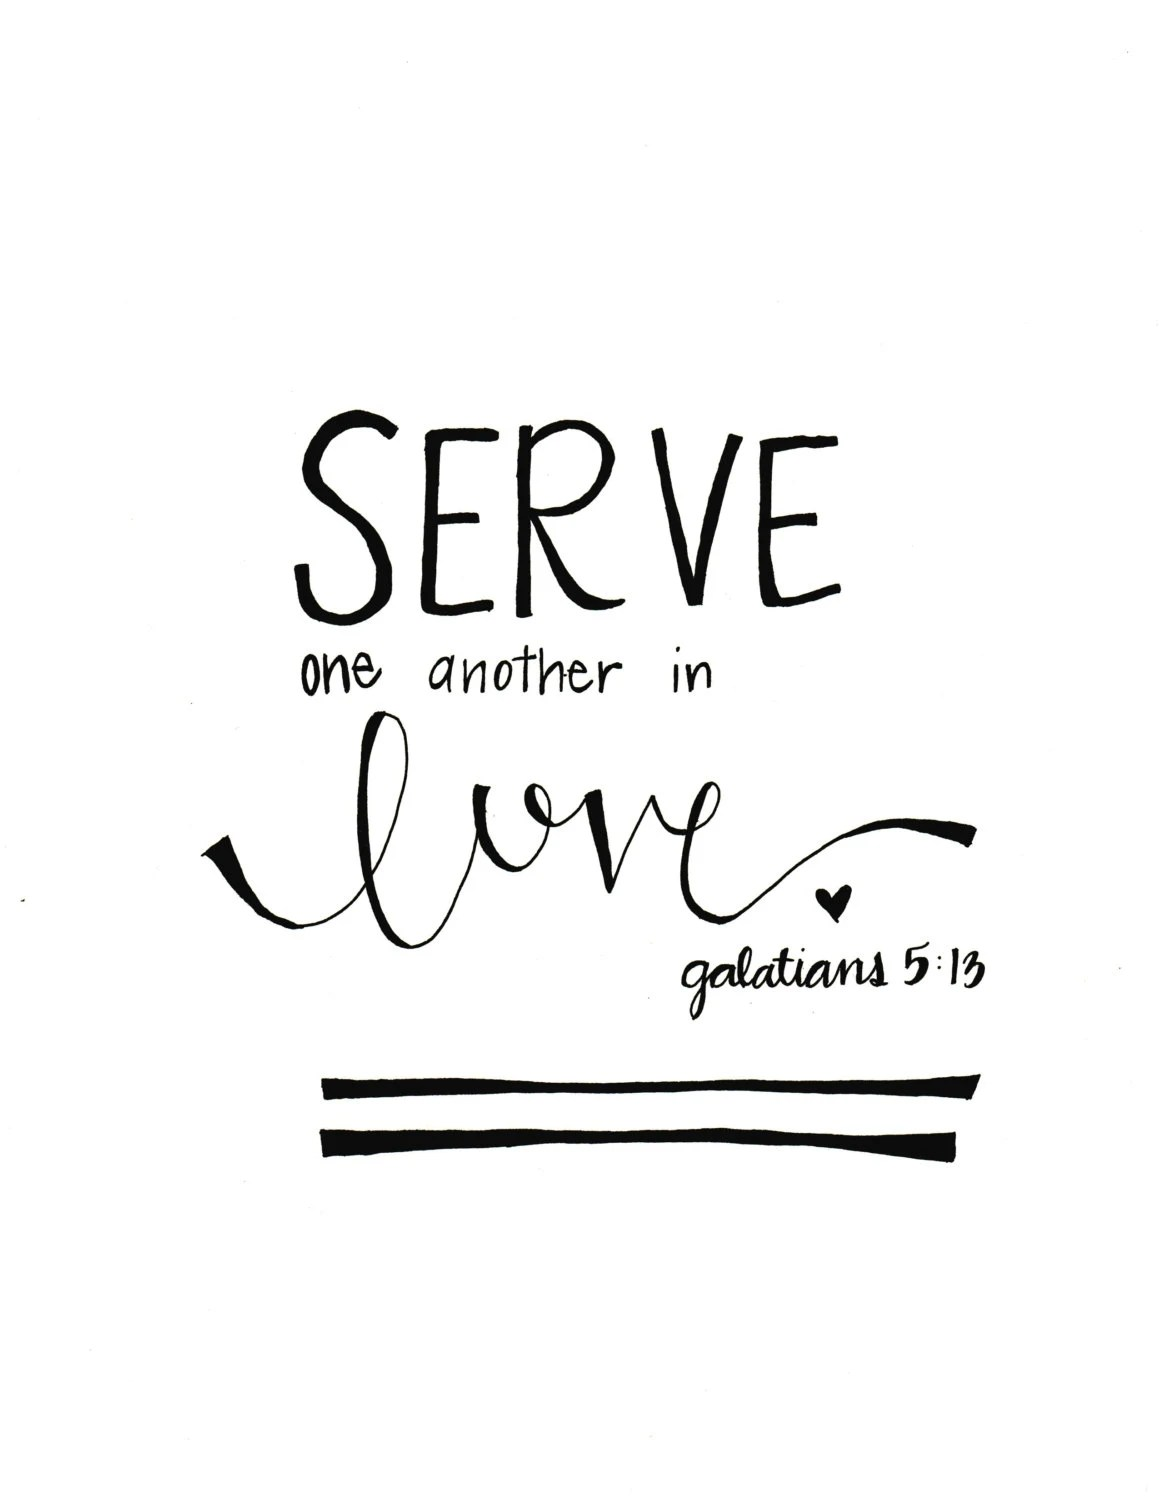 Items similar to Serve One Another In Love, Galatians 5:13